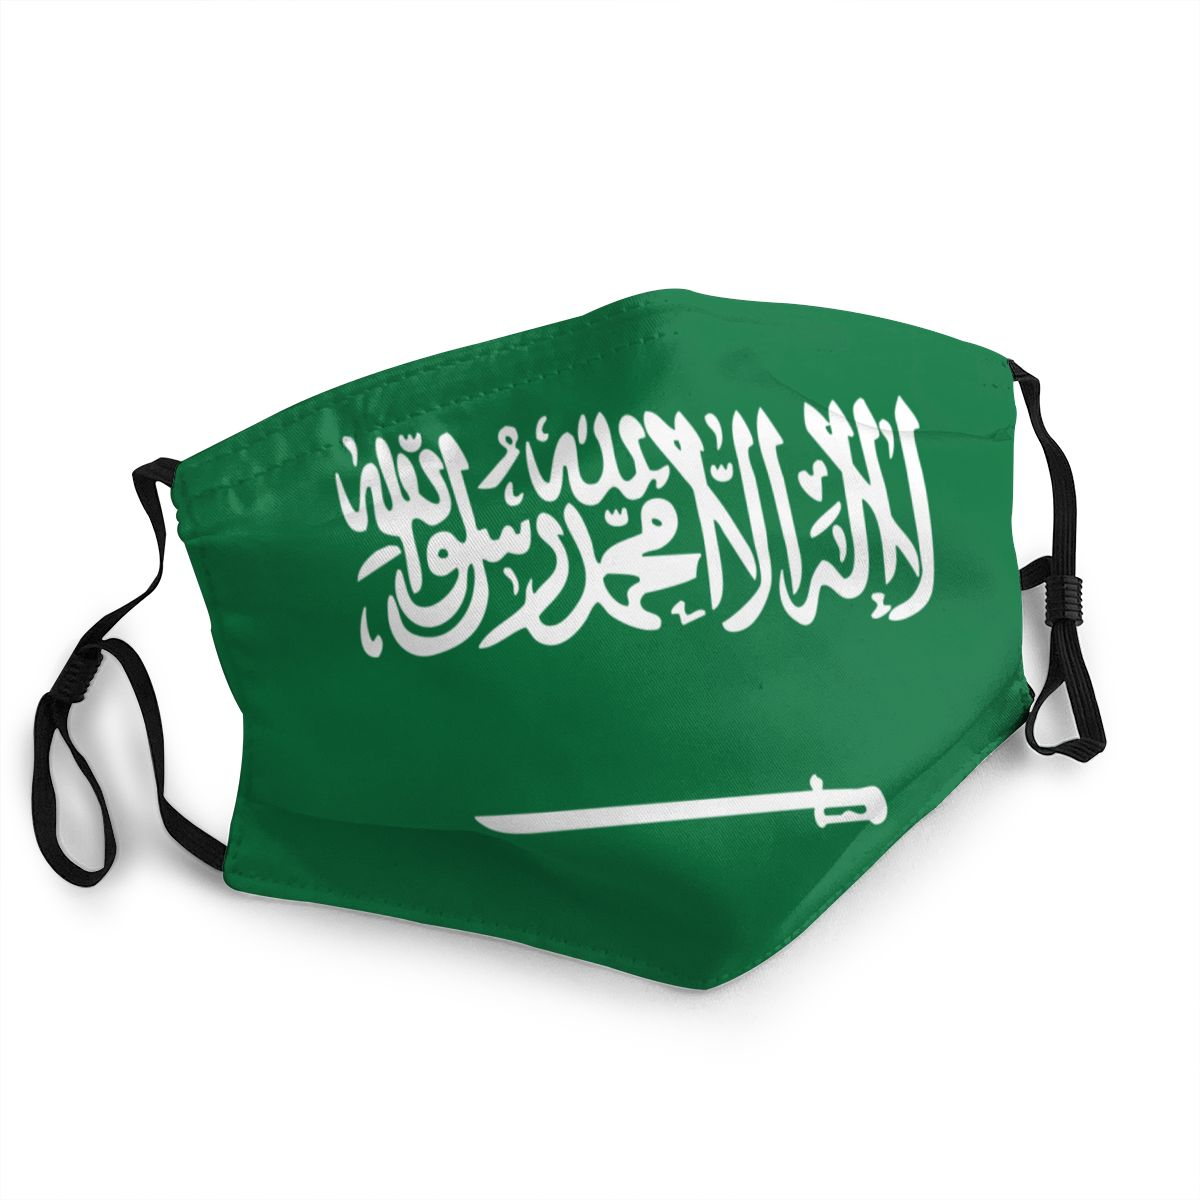 Saudi Arabia Flag Adult Non-Disposable Face Mask Anti Haze Dust Protection Cover Respirator